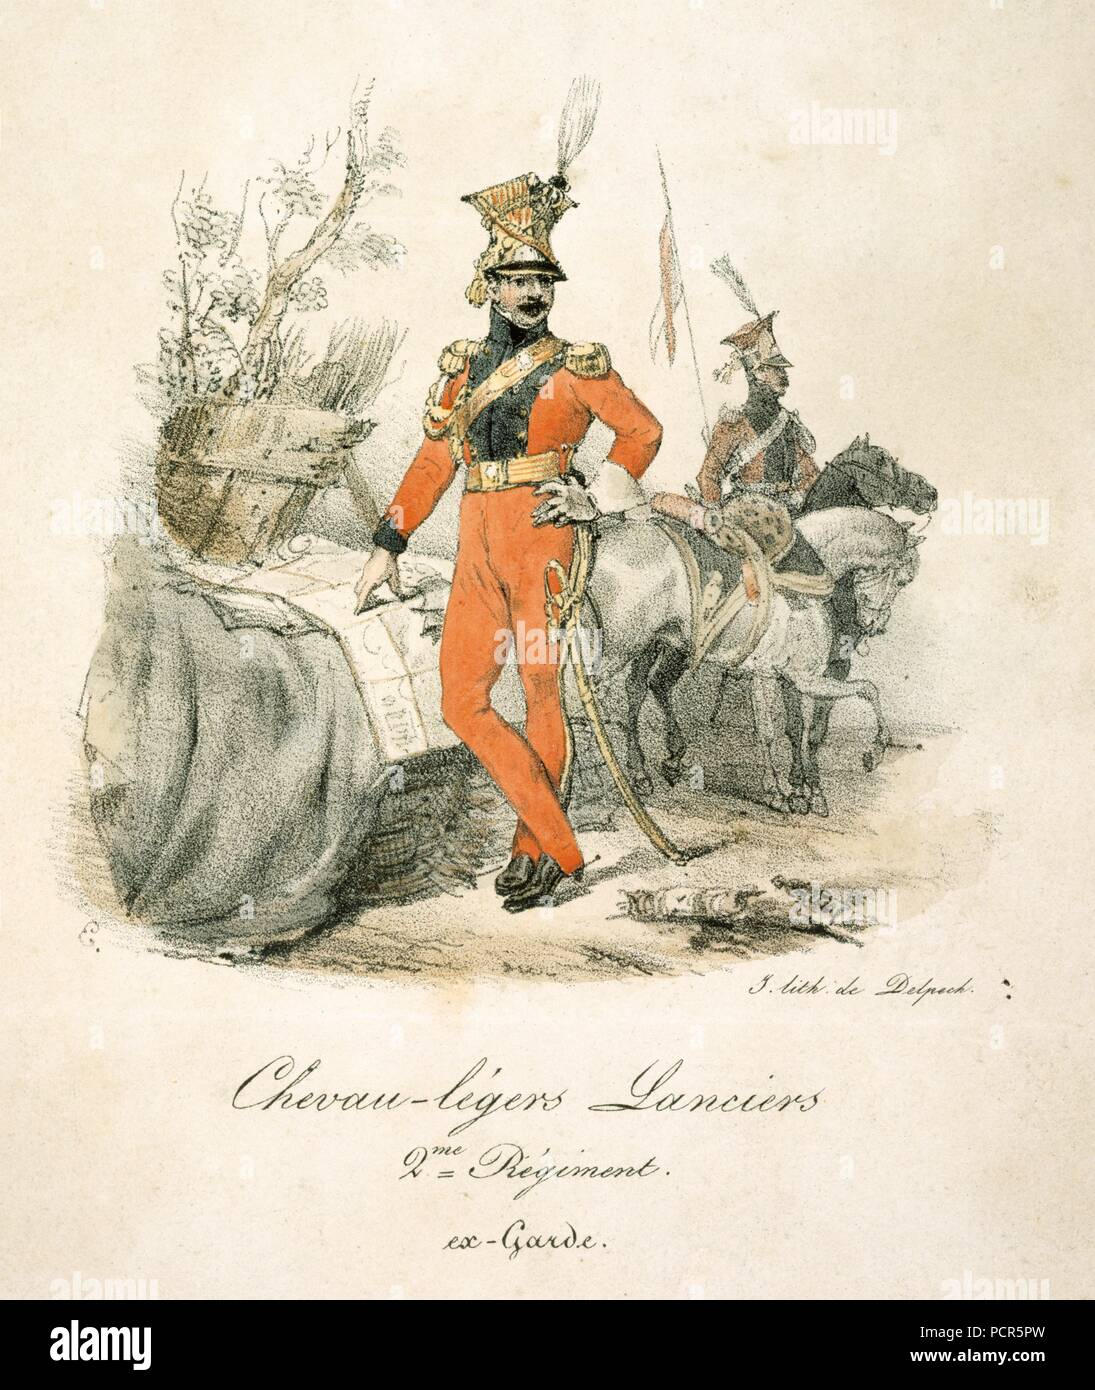 French lancers of the Napoleonic Wars, 19th century. An officer of the Chevaux-legers Lanciers (2nd Regiment of Imperial Guard), with a mounted private in the background.  In 1815 at the Battle of Waterloo this unit formed part of General Lefebvre-Desnouettes' Guard Light Cavalry Division, which took part in Marshal Ney's massed cavalry attack on the British lines. They had also been engaged at the Battle of Quatre Bras on 16 June as scouts ahead of Marshal Ney's main body. - Stock Image